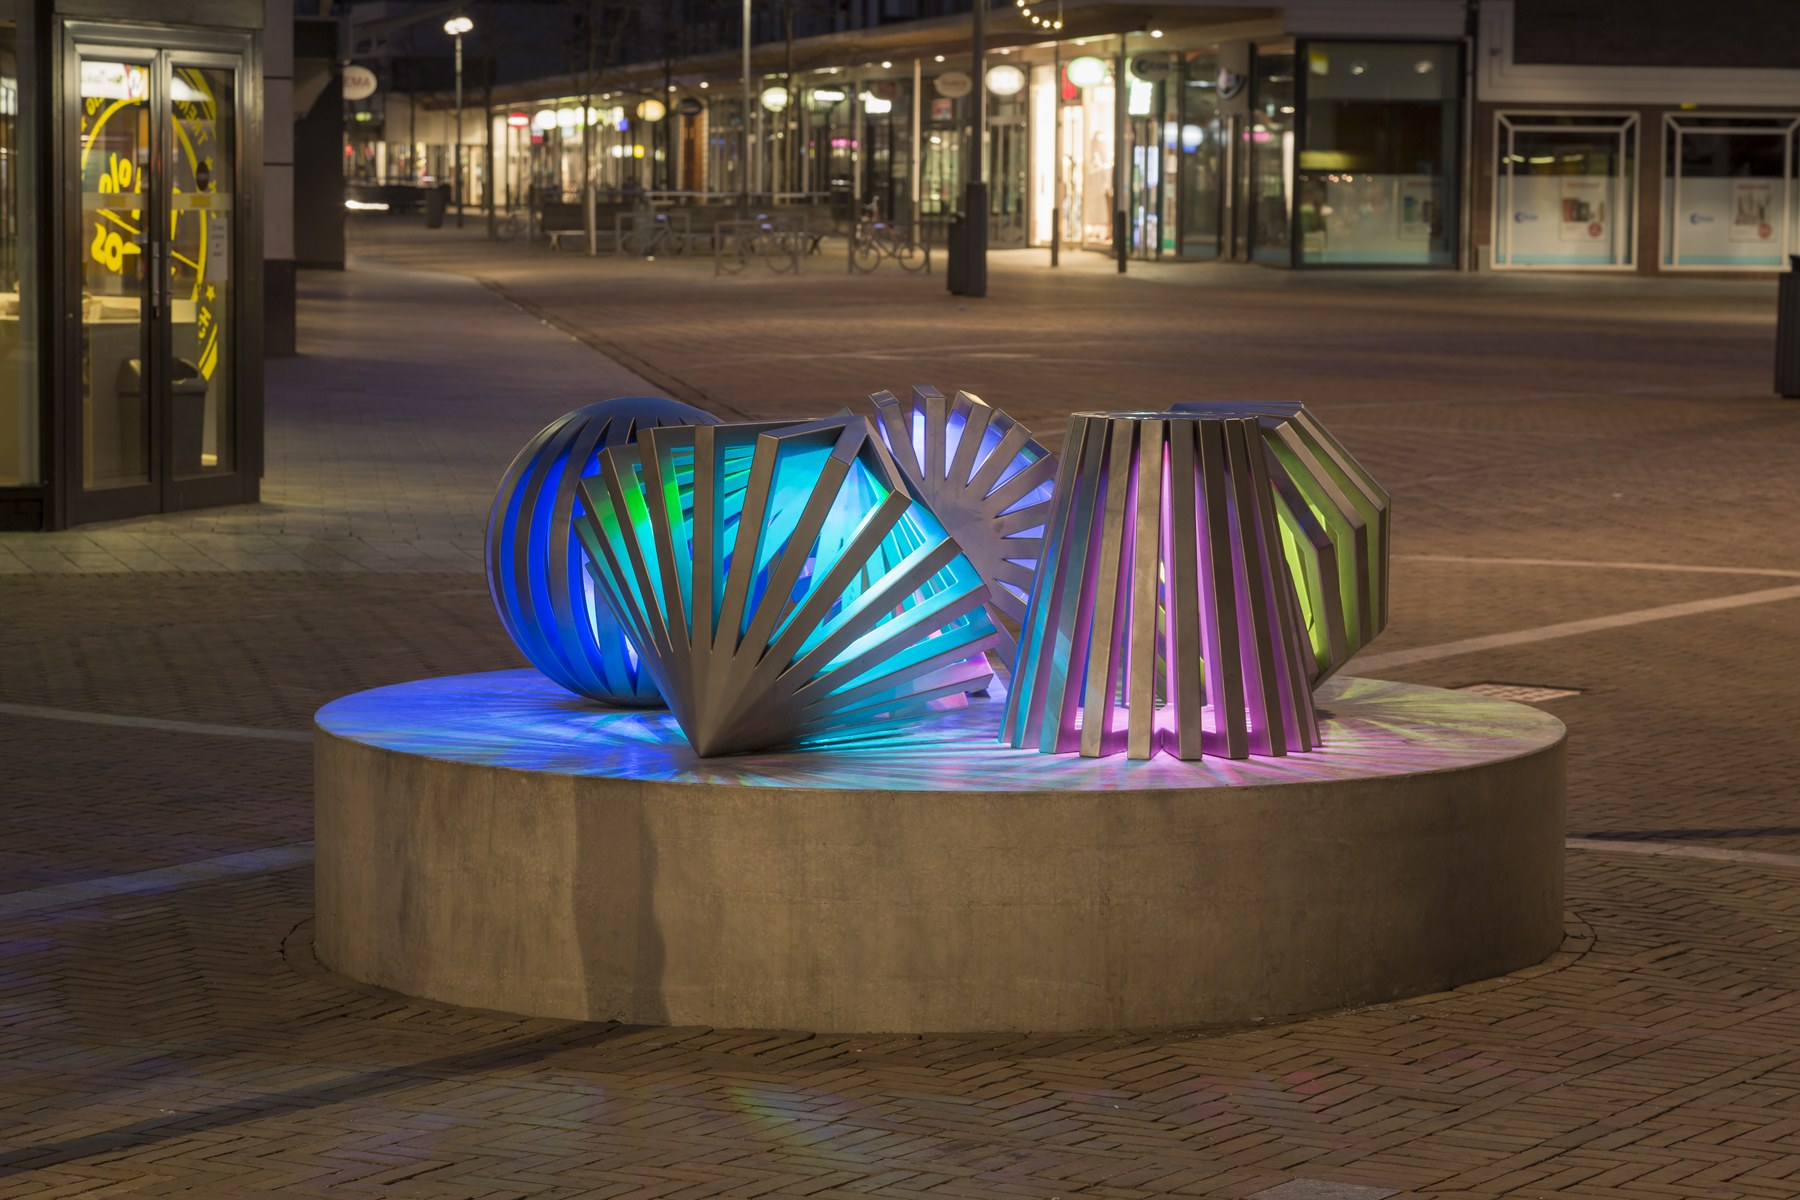 Emmeloord / Kettingplein - By light-artist Herman Kuijer